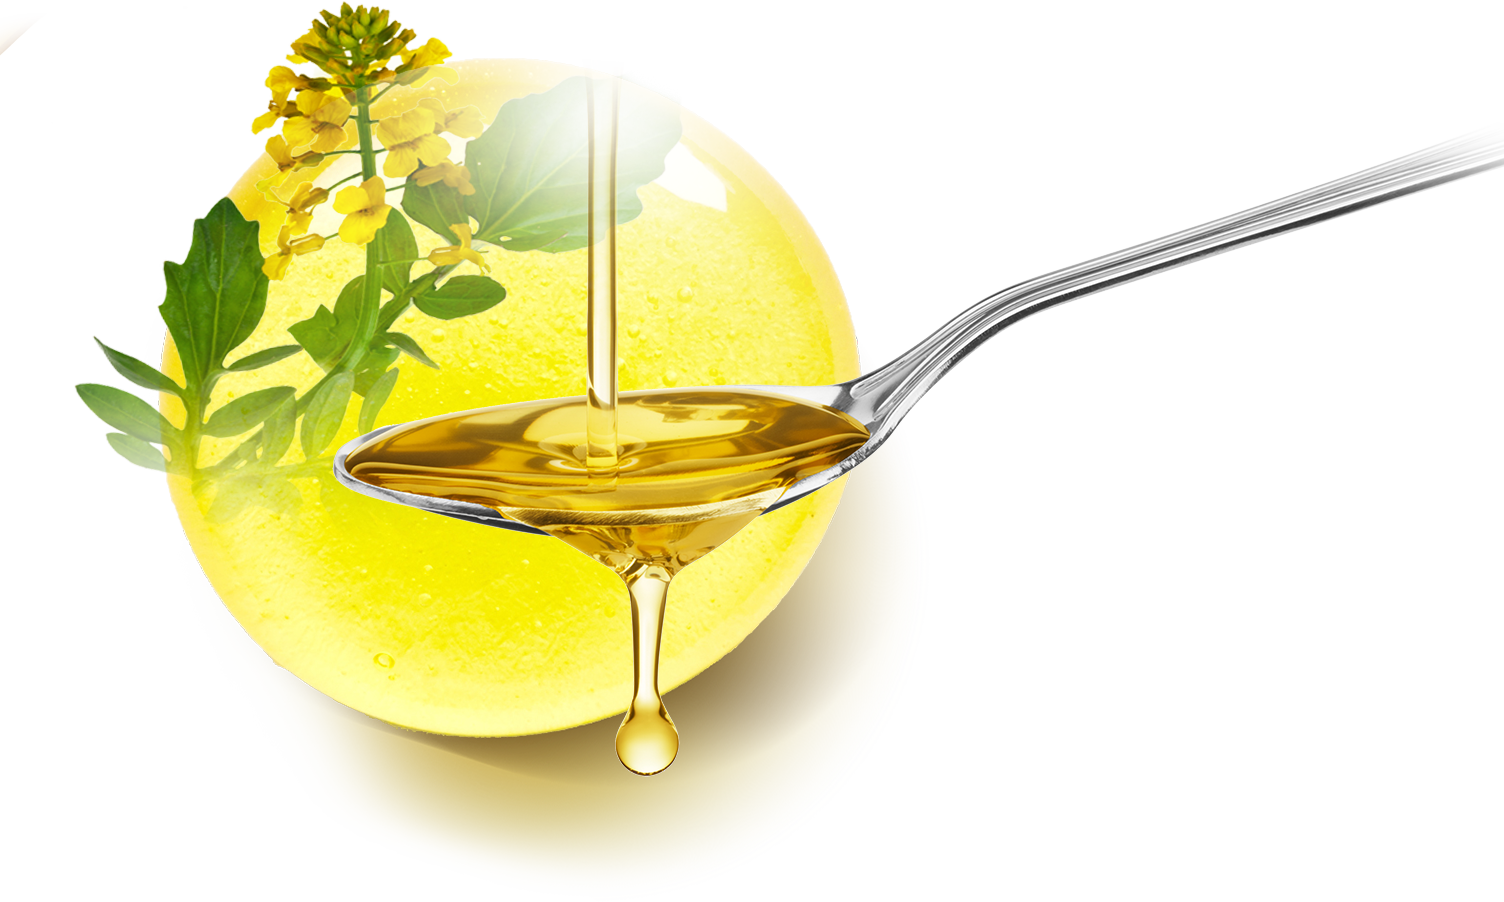 camelina oil - healthiest cooking oils